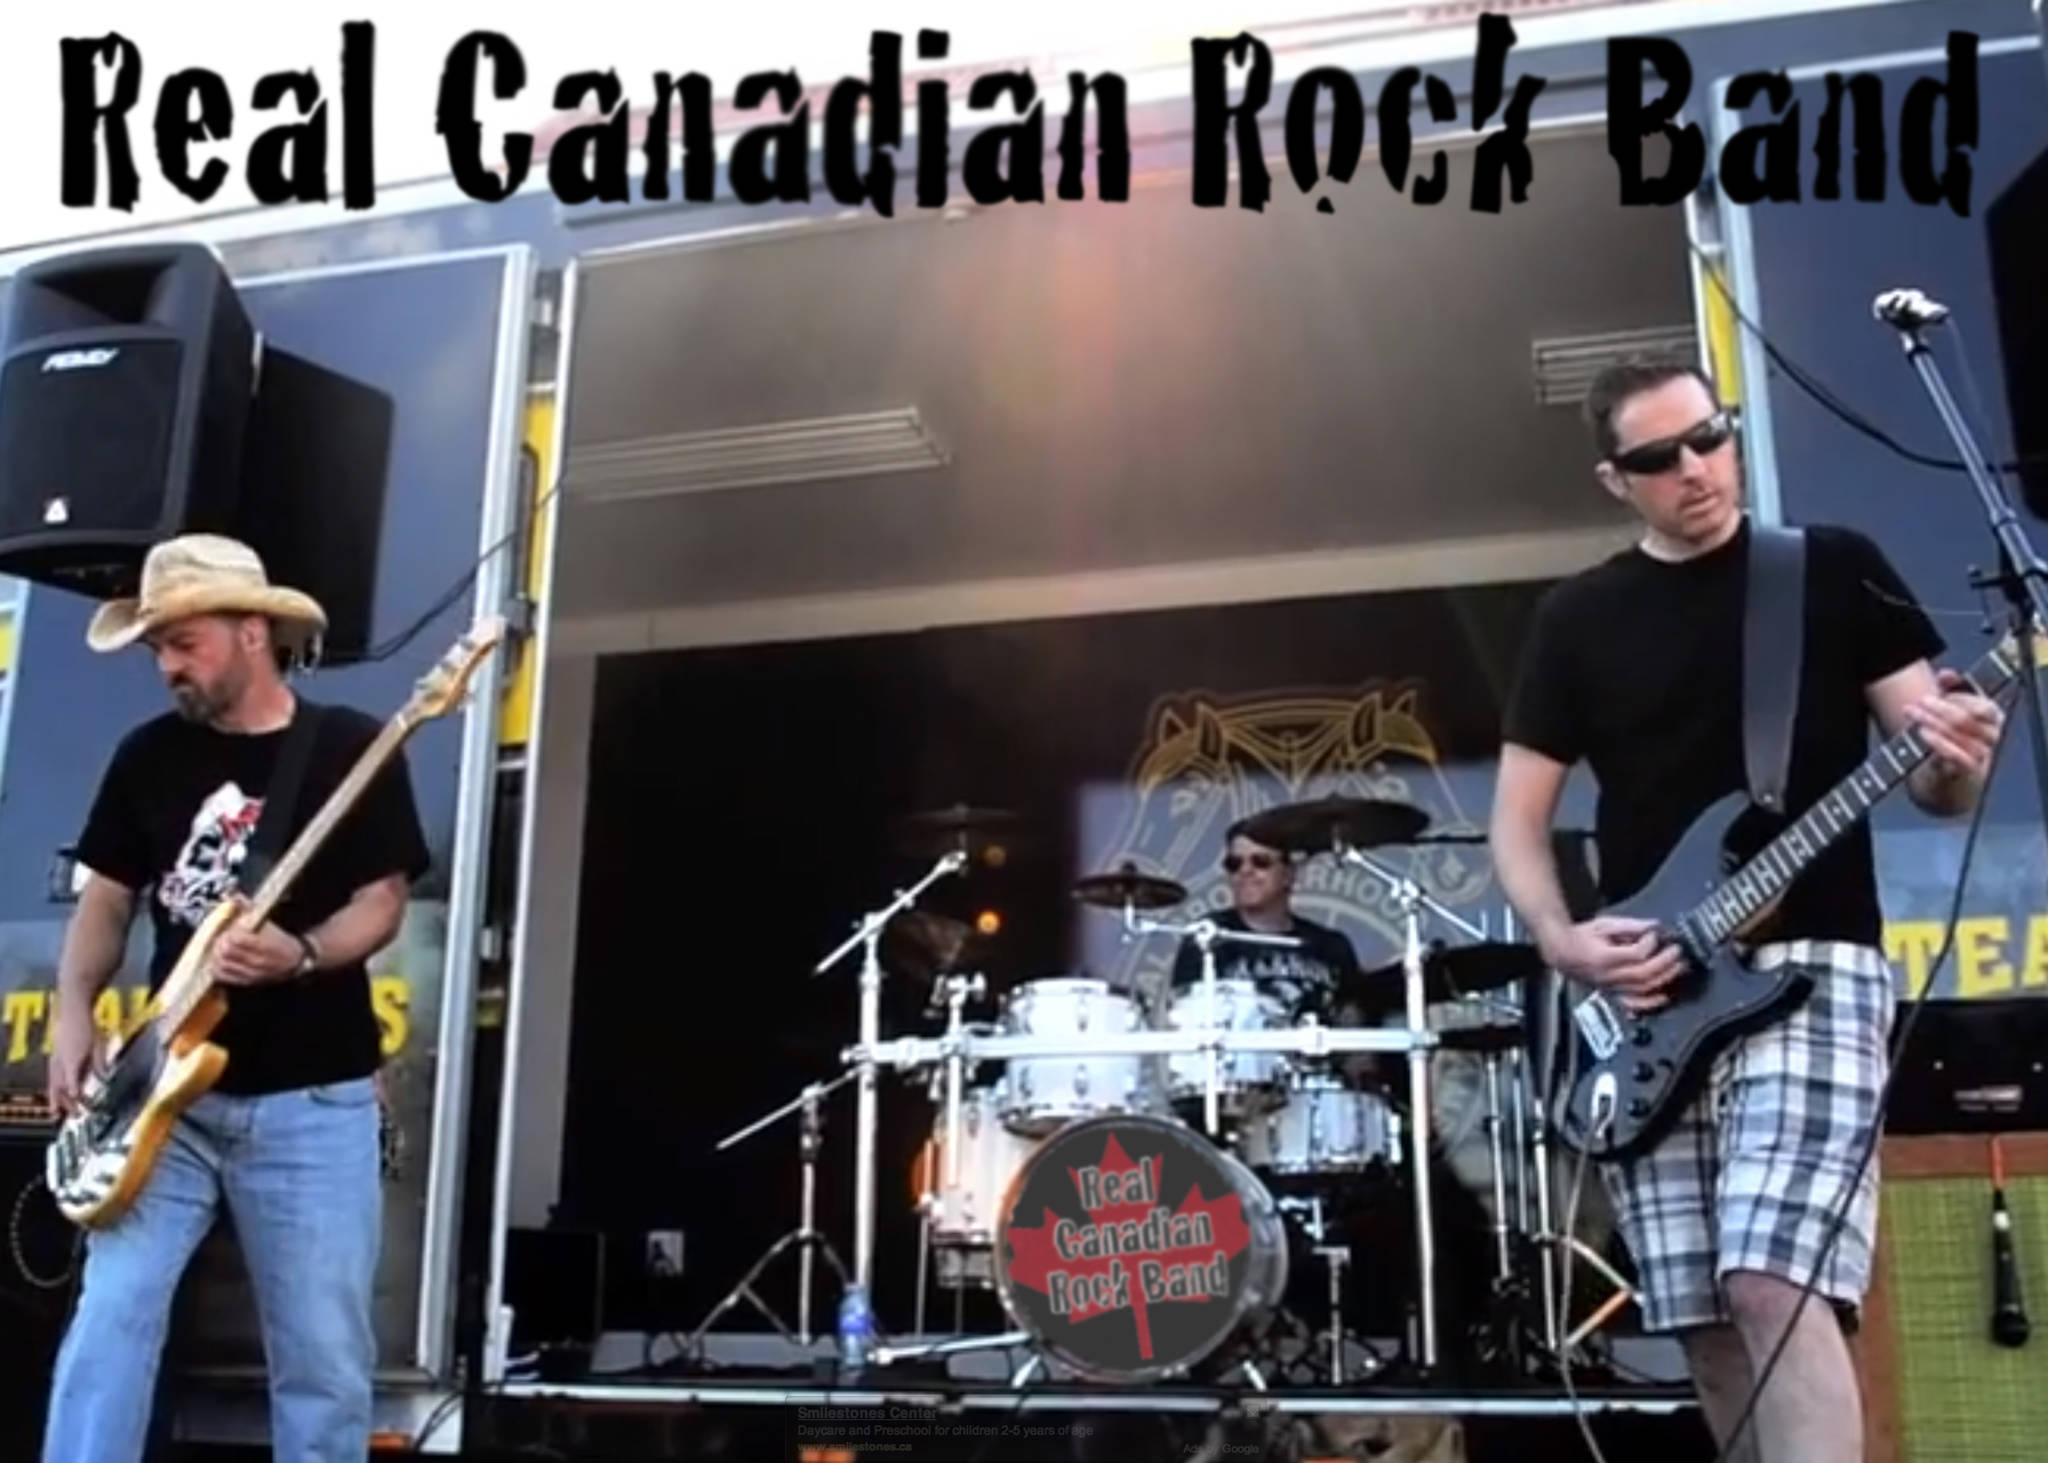 Hailing from the province of British Columbia, Canada, these three rockers have embraced and are dedicated to channelling the sounds that are uniquely Canadian. (Cruise-In/Special to Langley Advance Times)